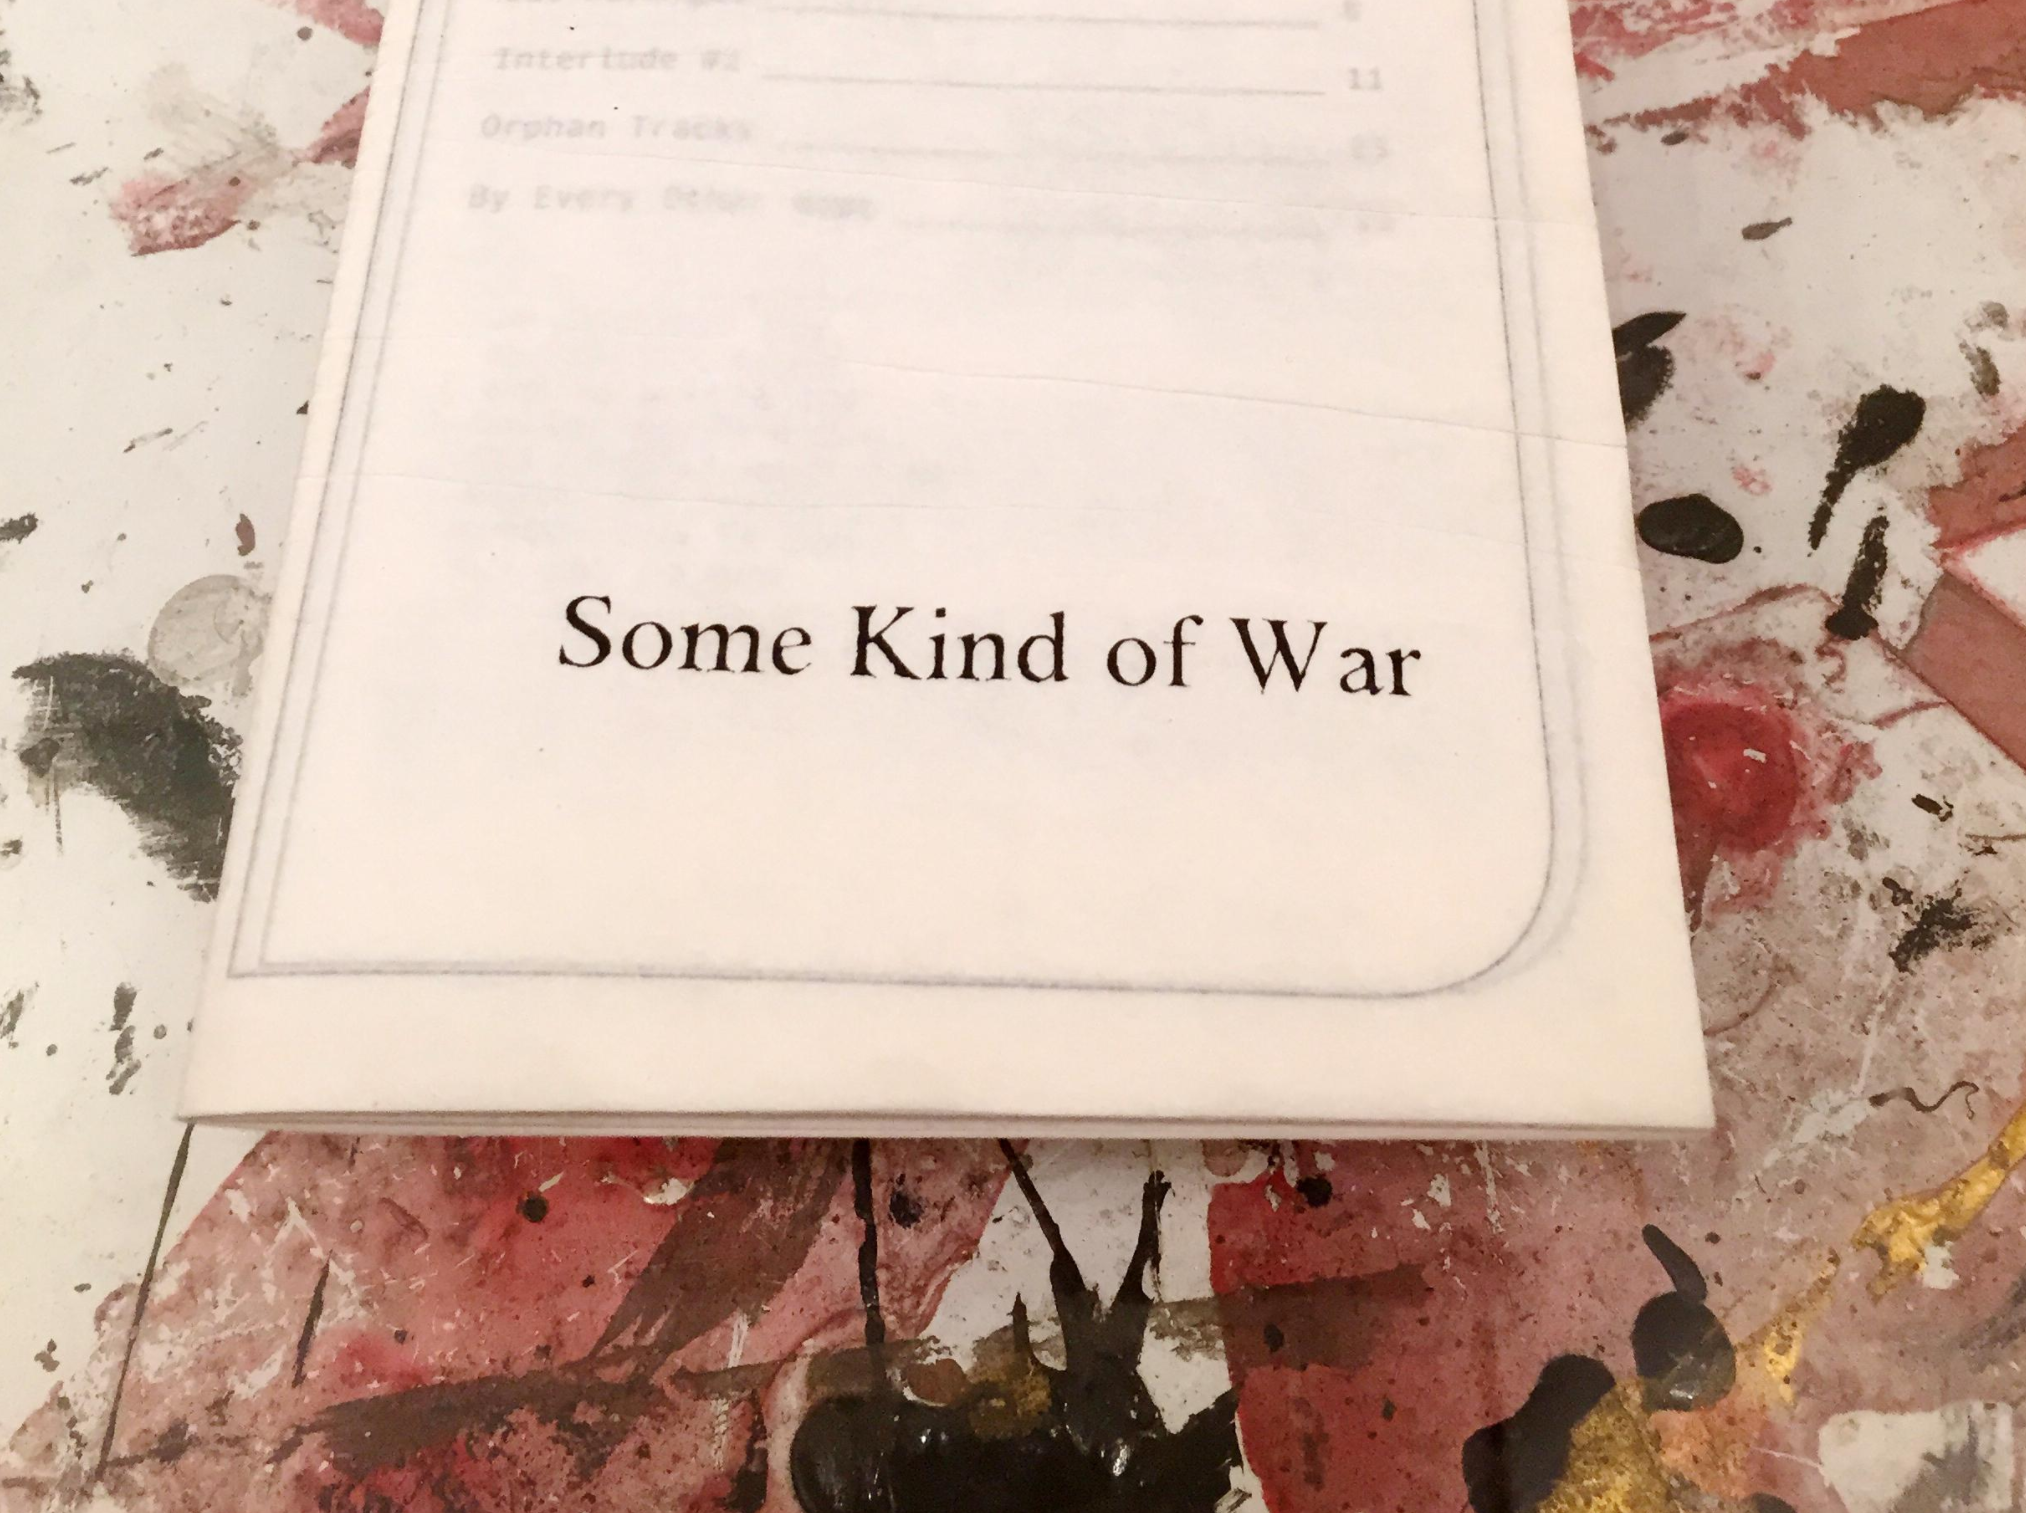 Front cover of Some Kind of War (2013) Mestrich's artists' book of poetry and short stories printed on onion skin paper